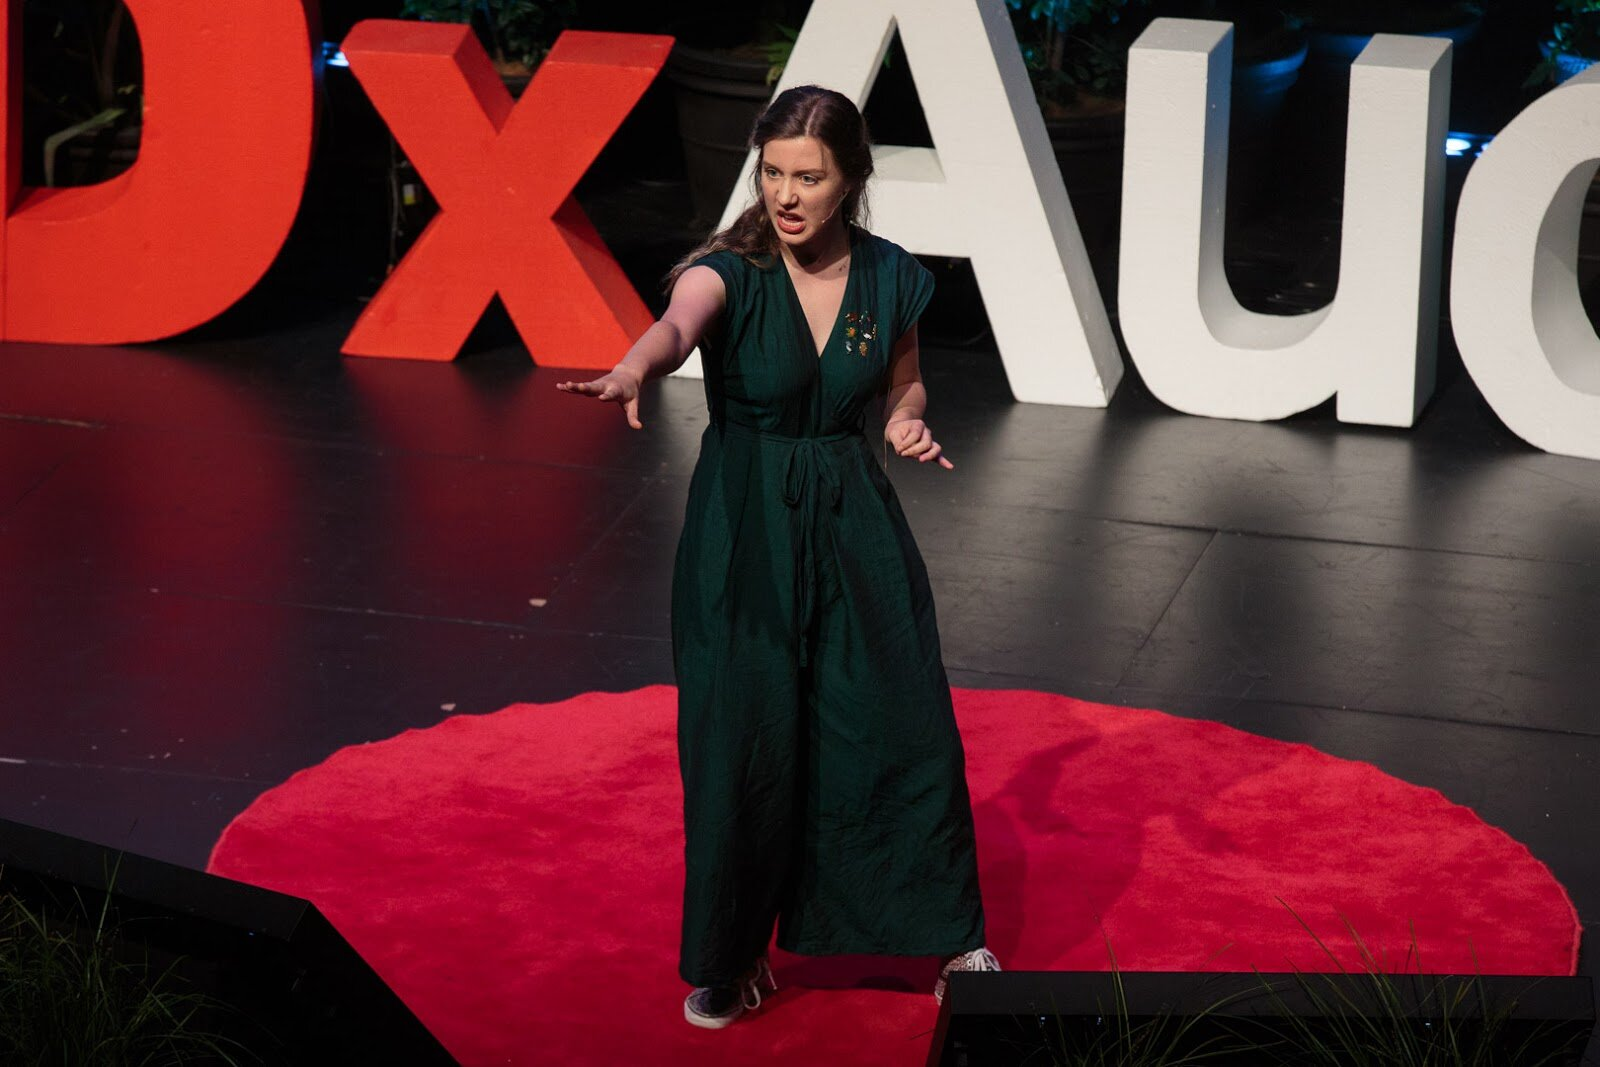 Rose on the TedX Auckland stage doing spoken poetry in a very dedicated stance. Credit for the image to: Connor Crawford